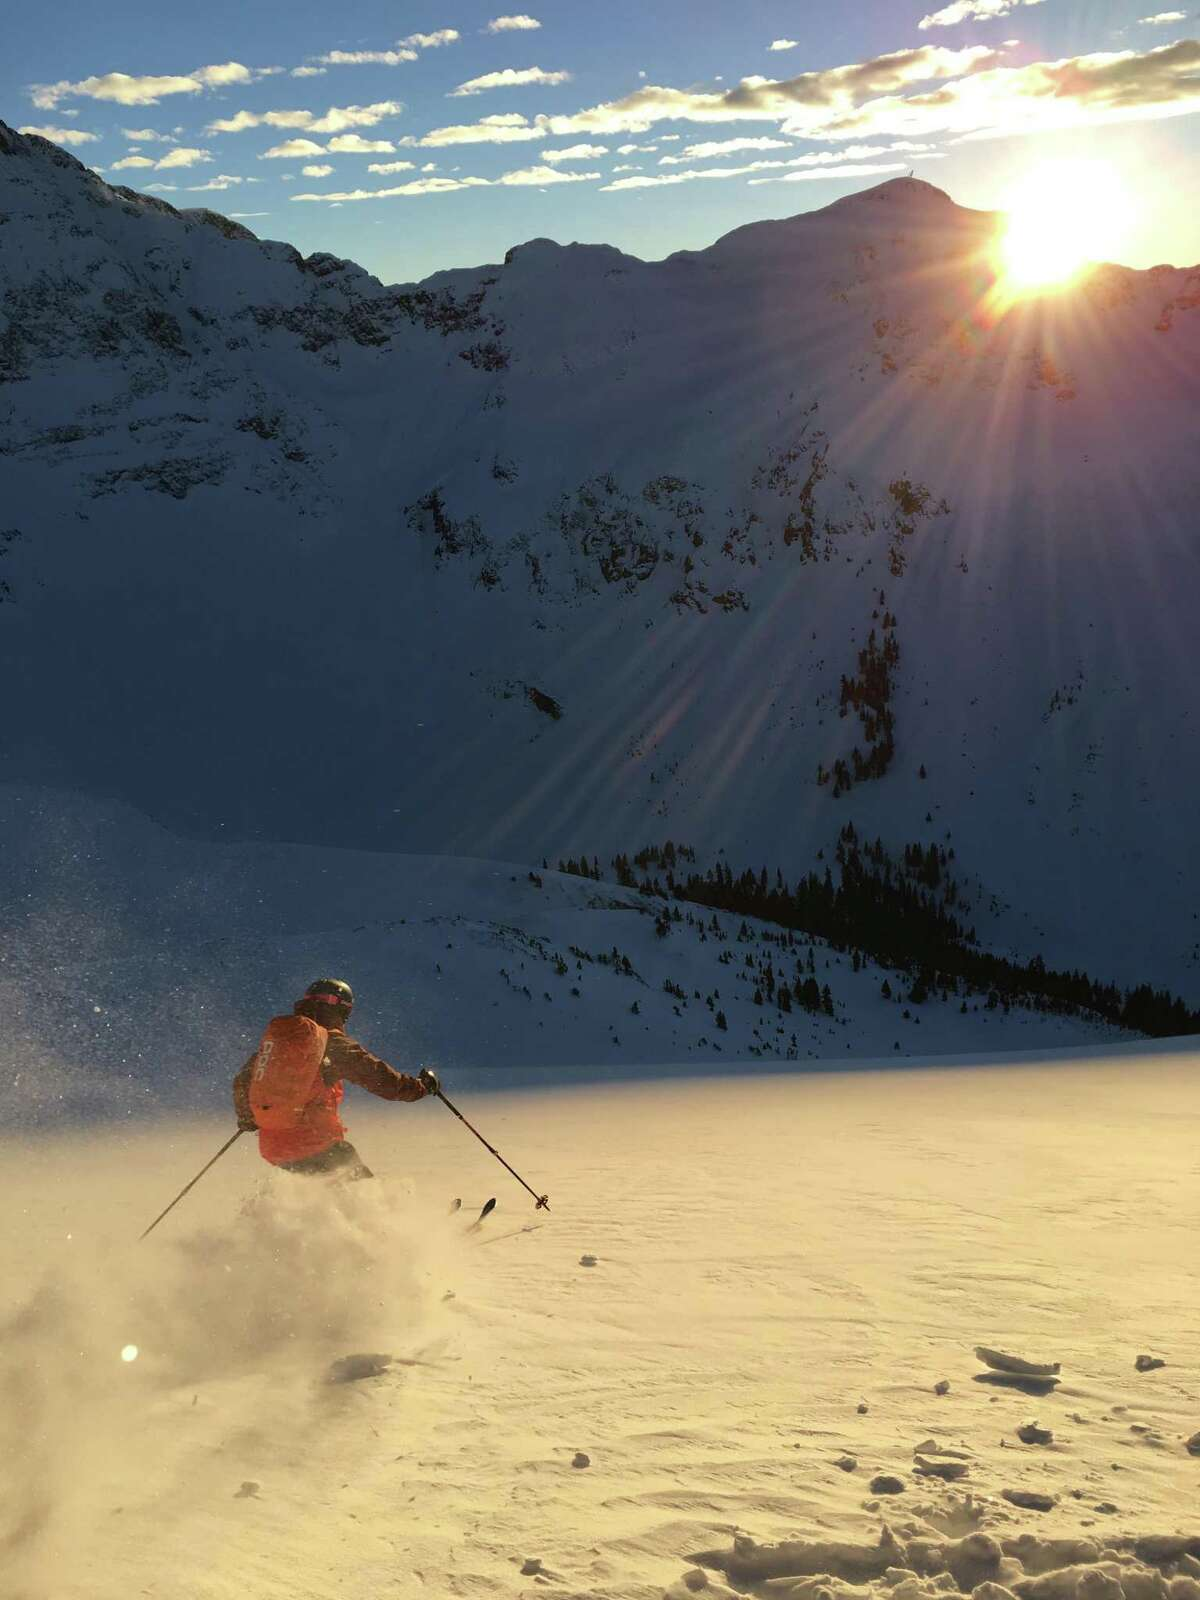 Silverton Mountain is the largest ski area in North America with more than 26,000 acres.